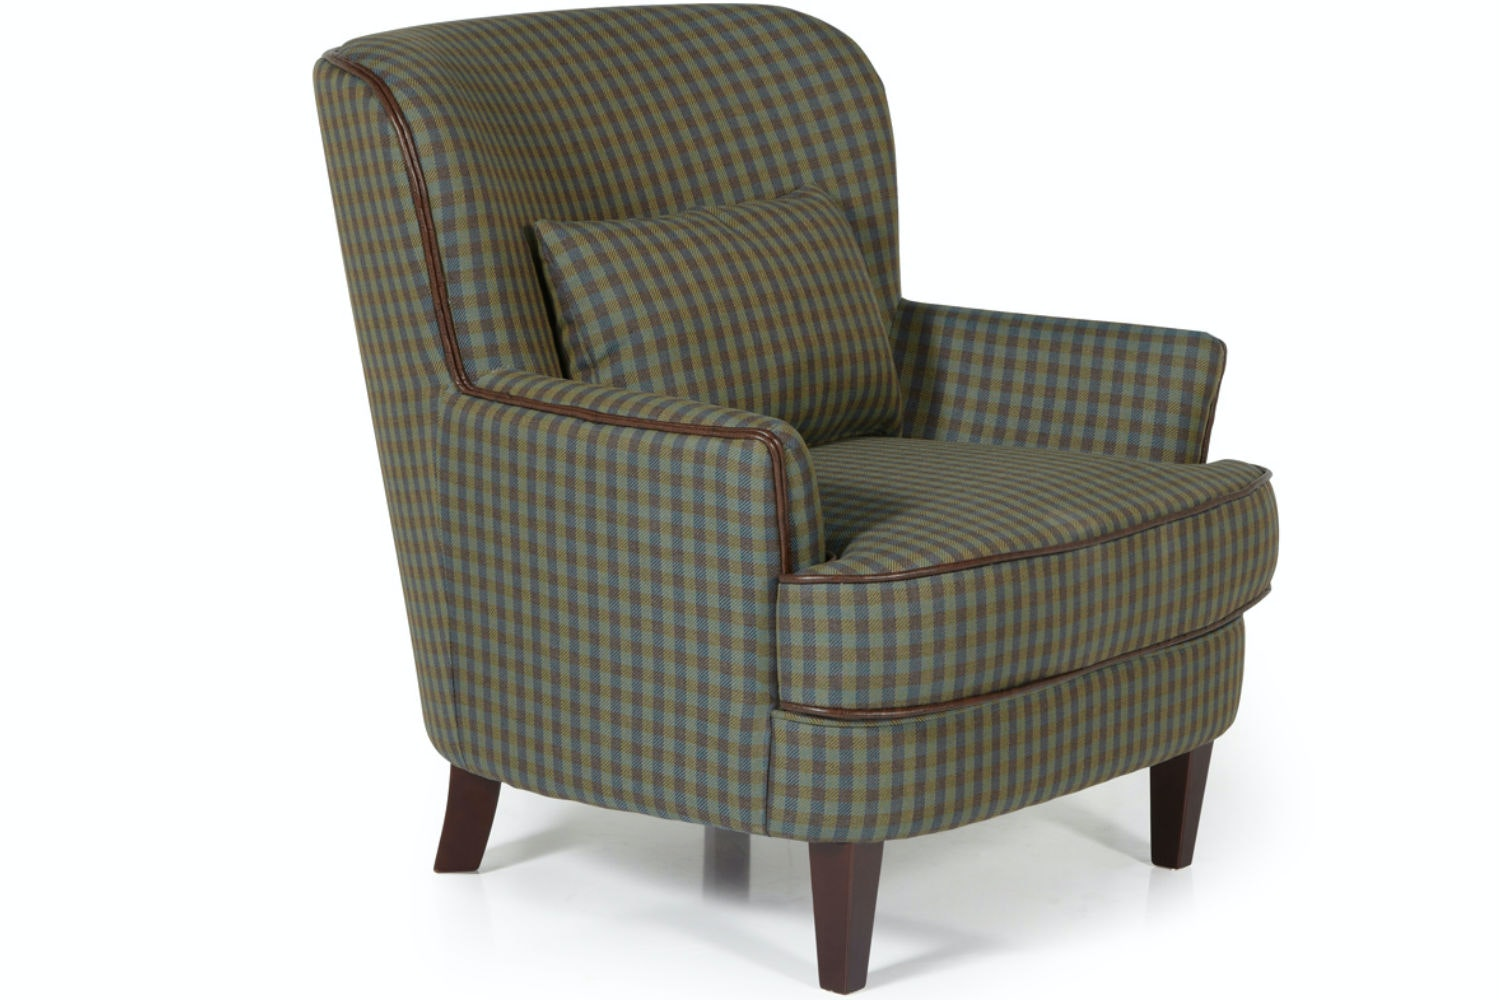 Trafalgar Bedroom Chair | Green